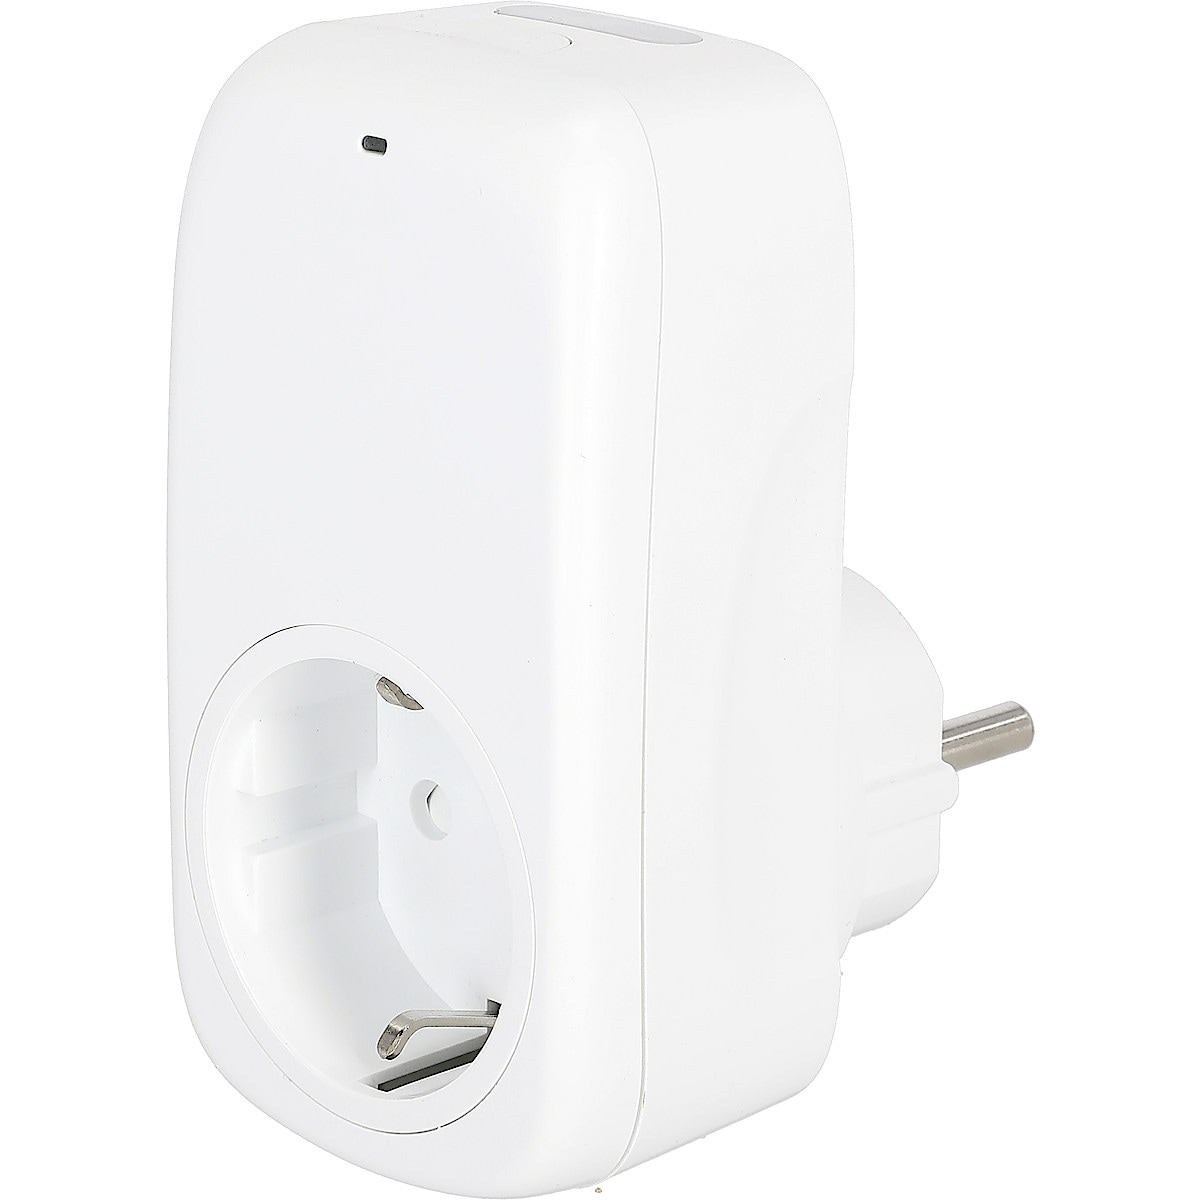 WiFi Smart Plug, Clas Ohlson Home